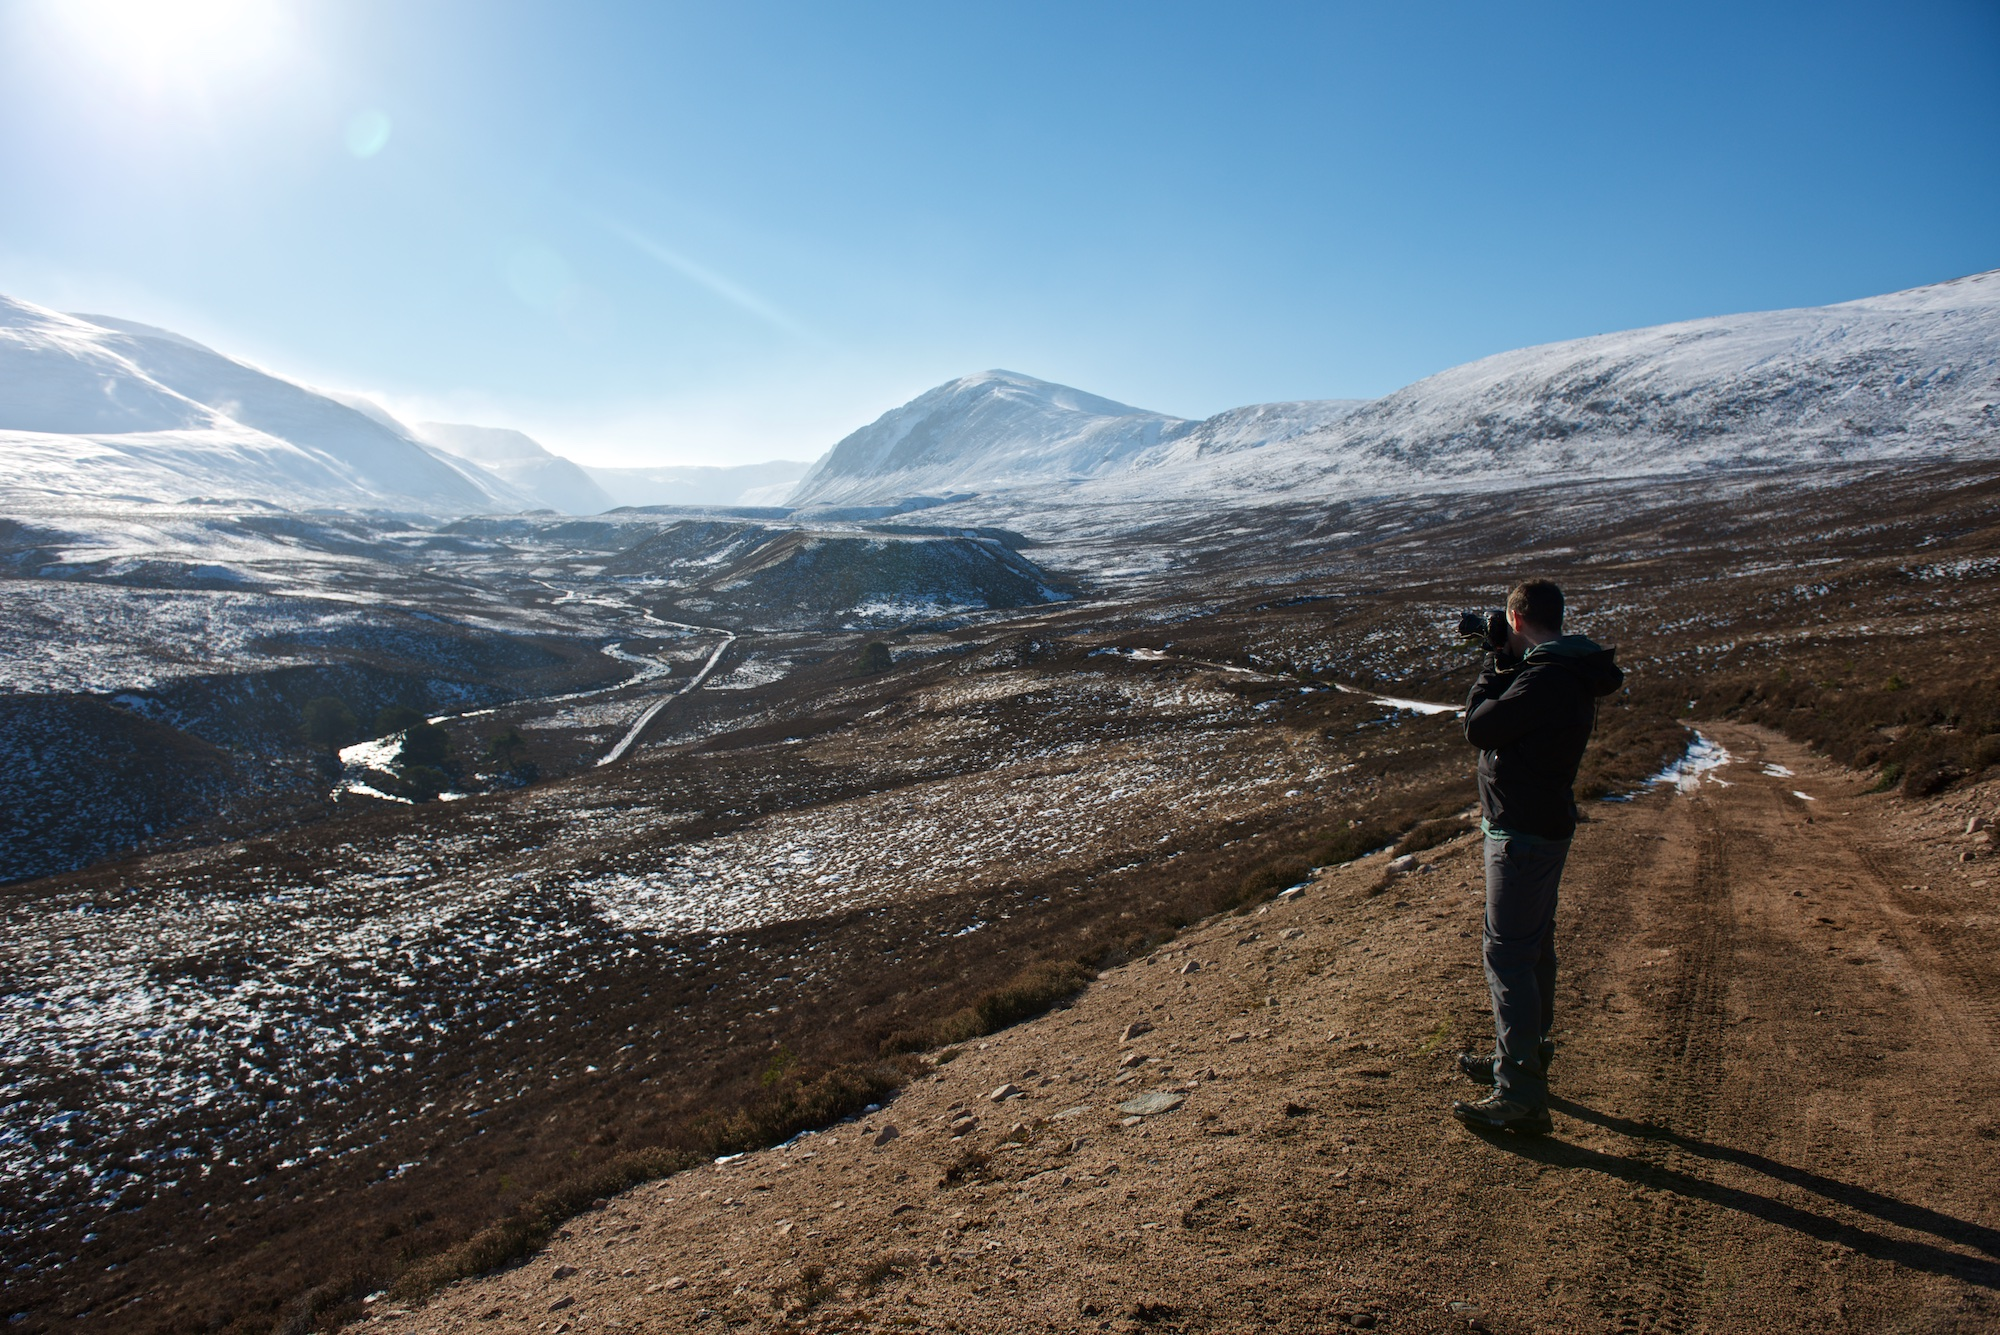 Chris stands on a high path taking a photo of the Gleann Eanaich valley in bright sunlight.